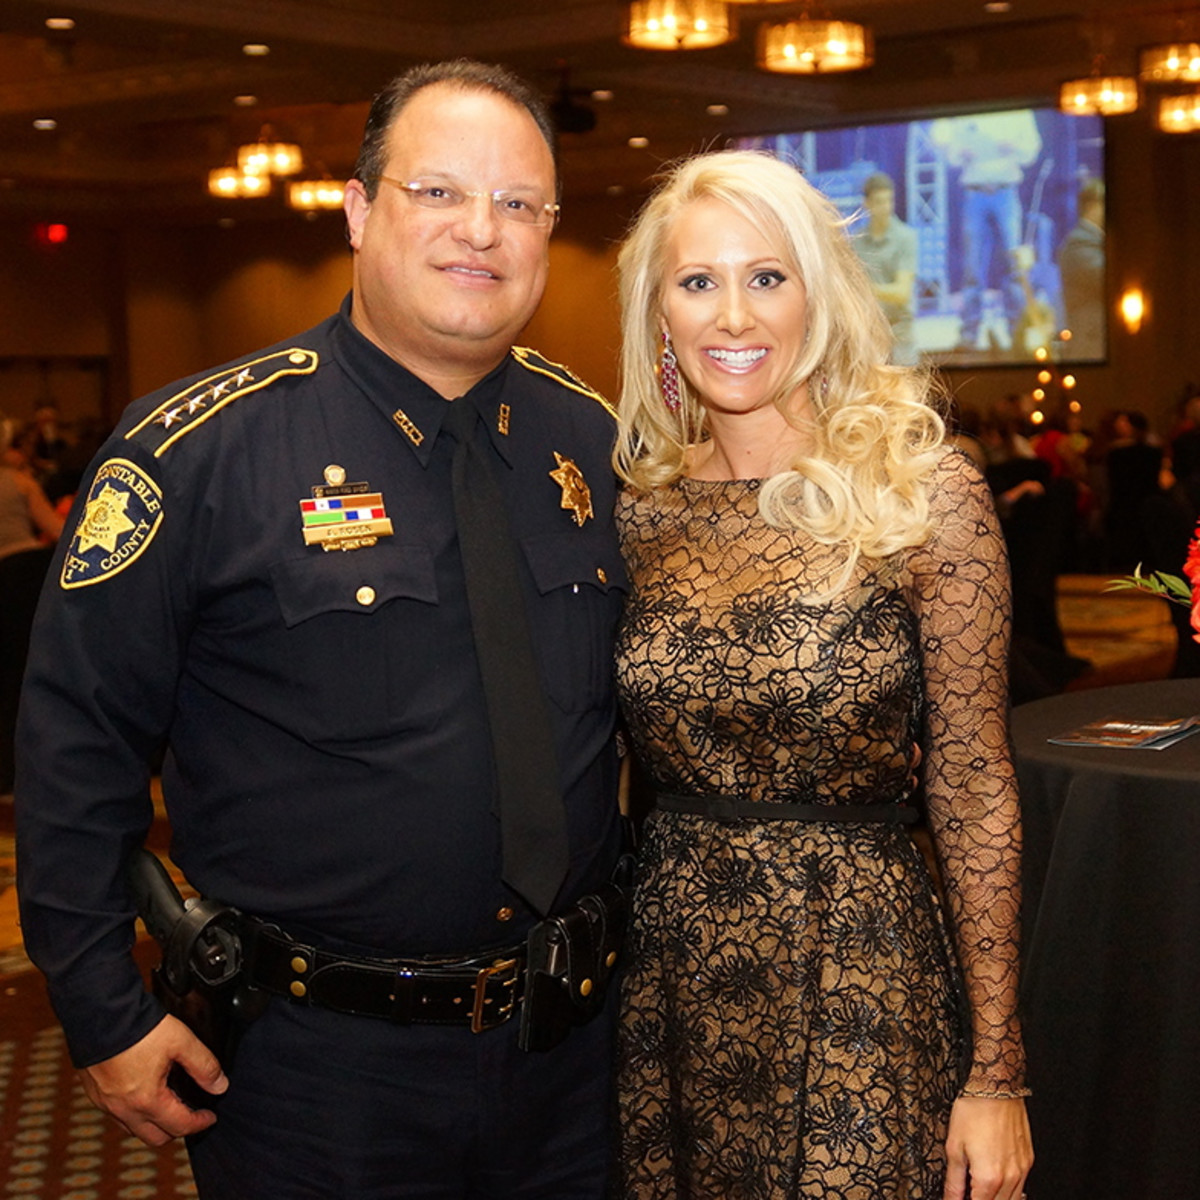 K9s4COPS Gala Precinct 1 Constable Alan Rosen and Chair Laurie Krohn